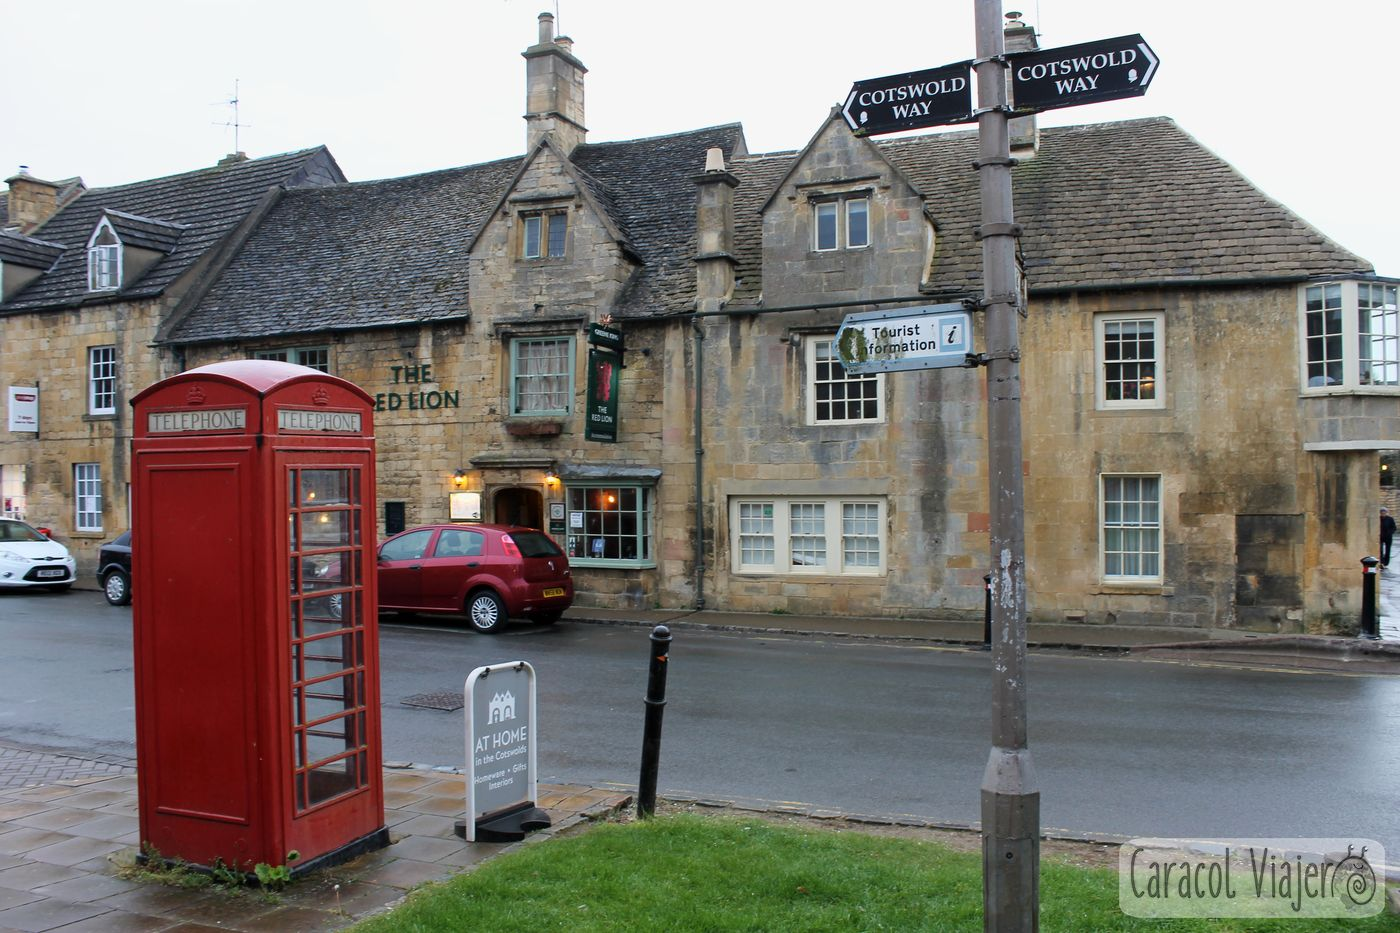 High Street Chipping Camden